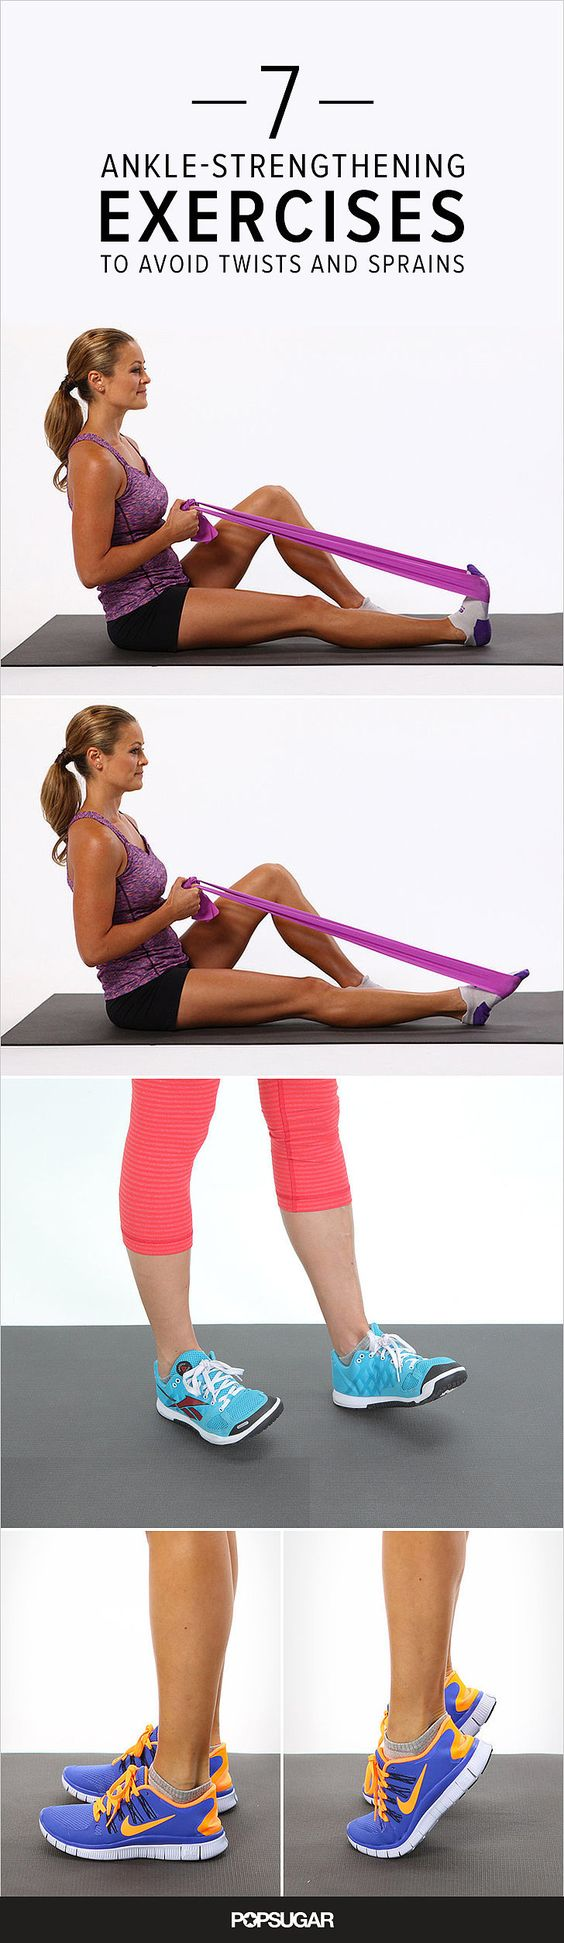 My workday mohawk login flex - Thera Band Exercises For Strengthening Feet Cross Training Conditioning Ideas For Dance Pinterest Band Exercises Exercises And Ankle Strengthening